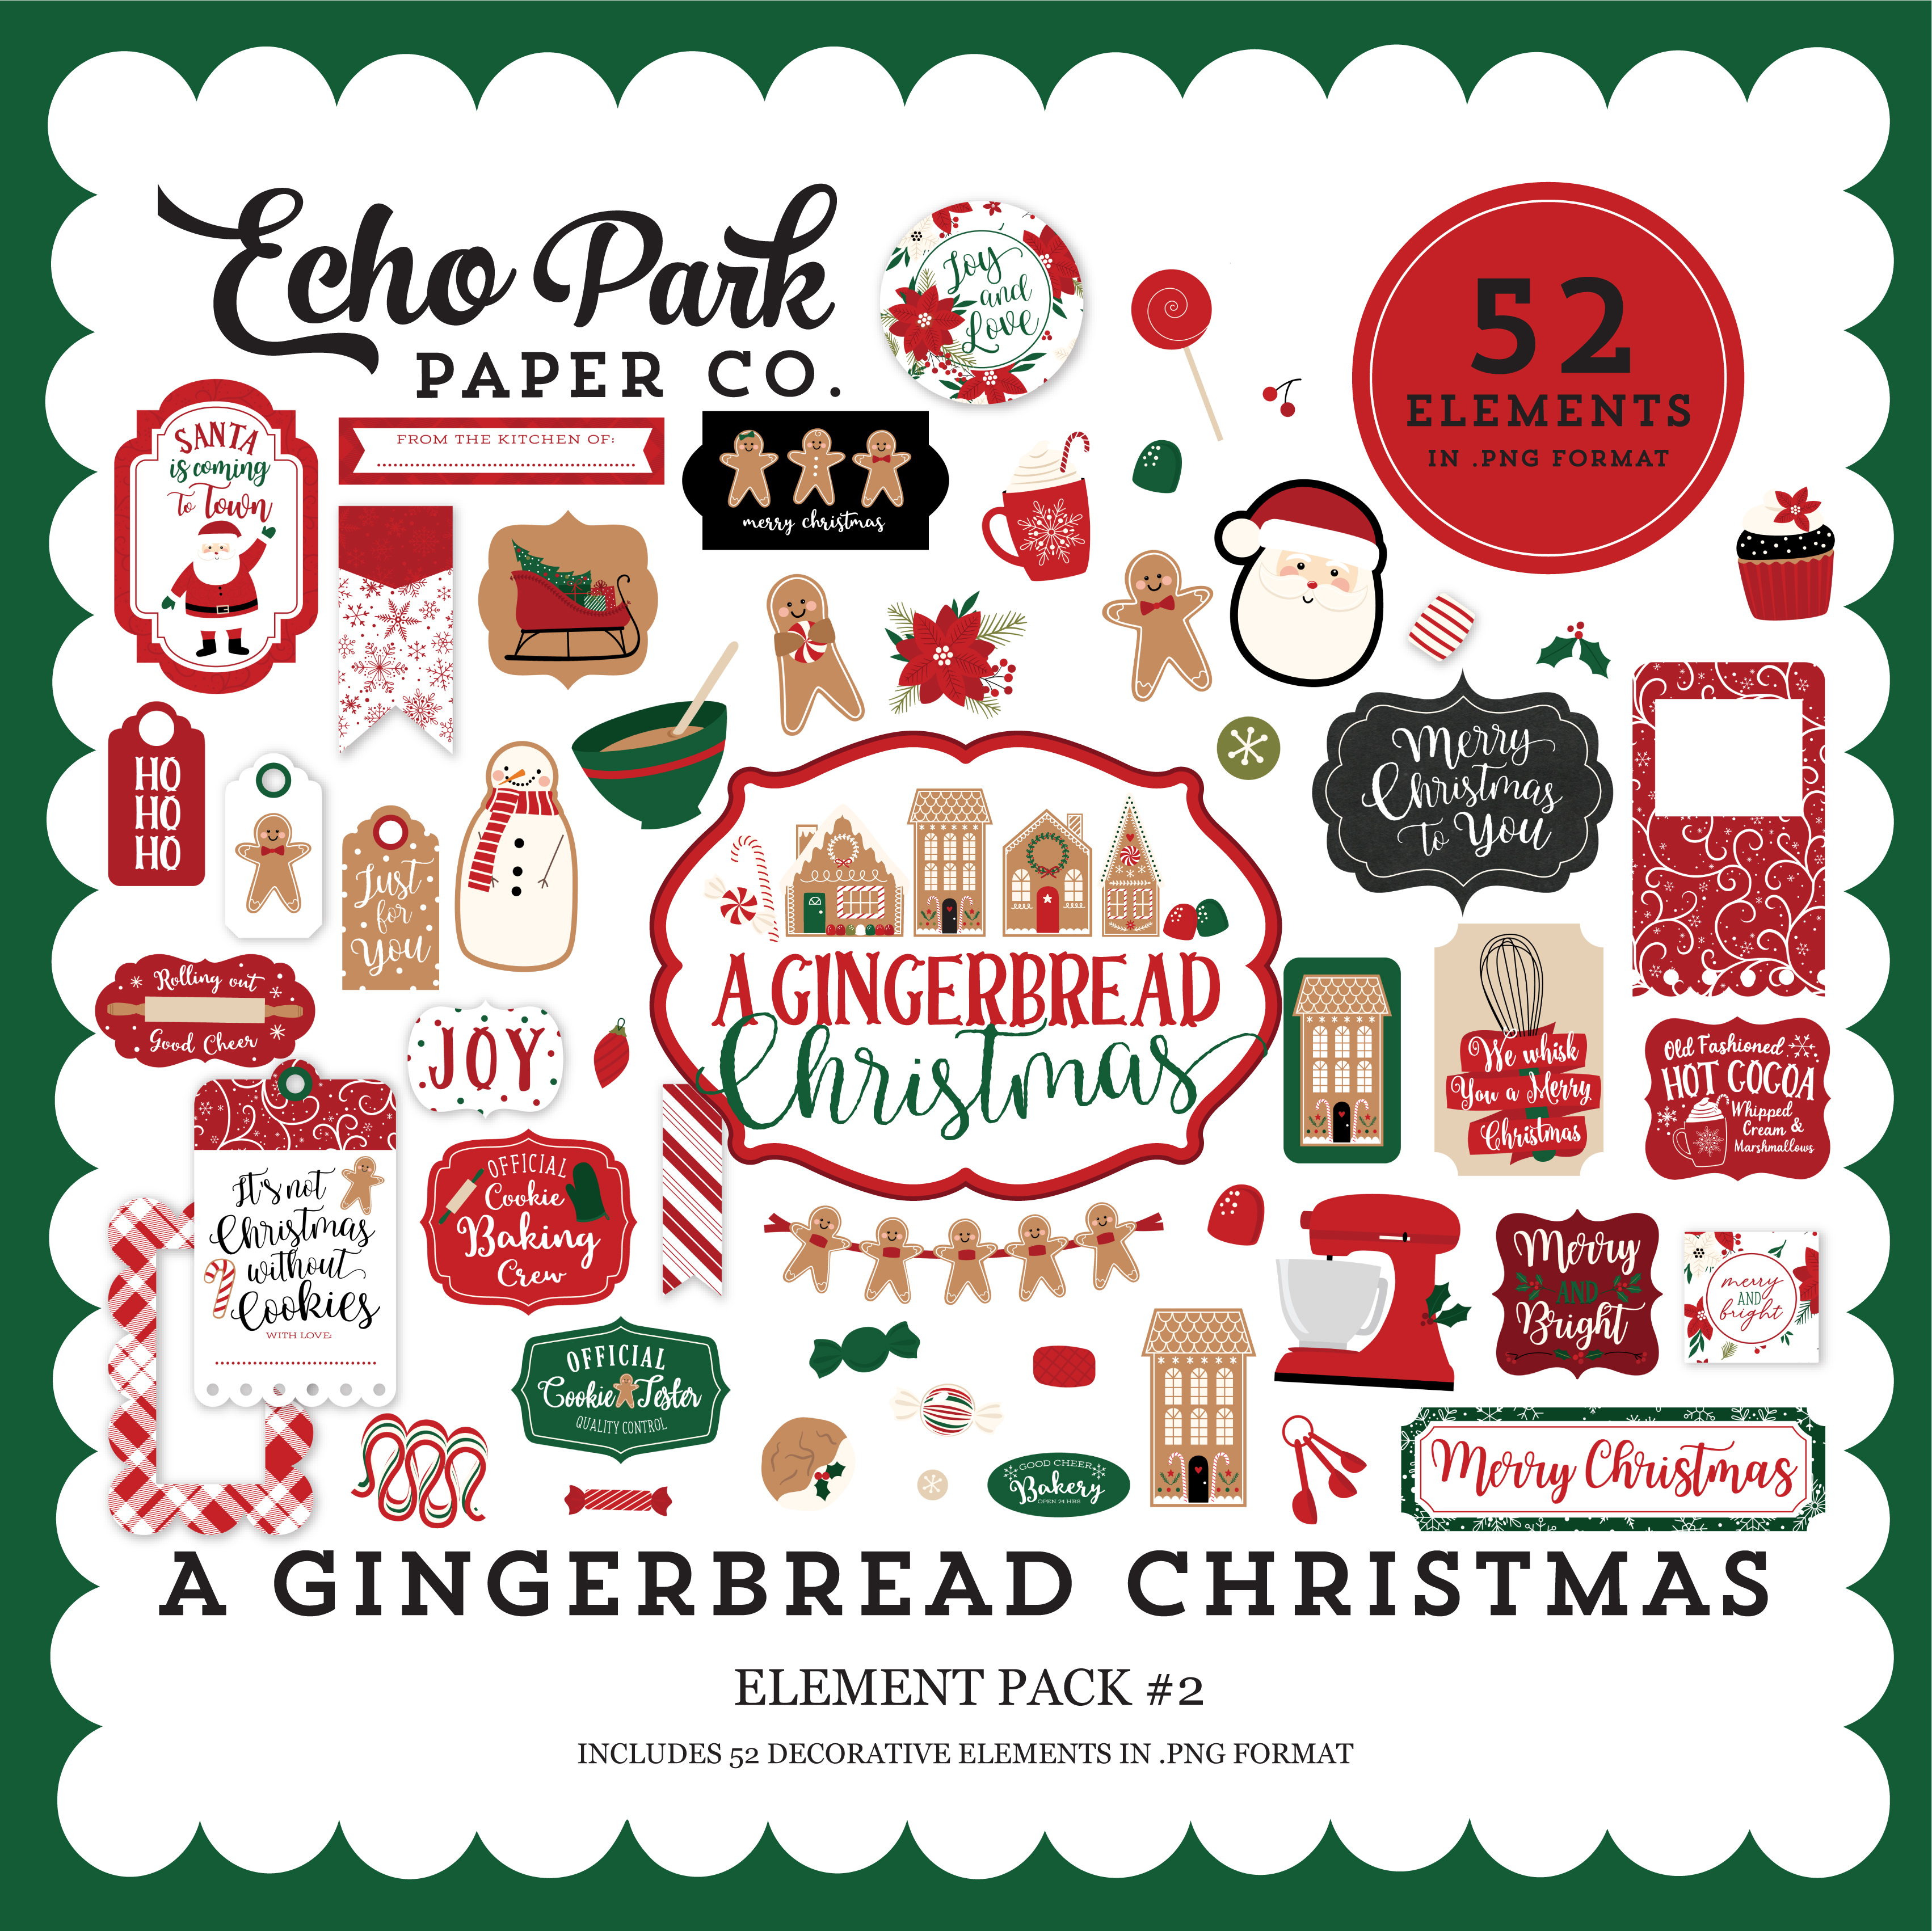 A Gingerbread Christmas Element Pack #2